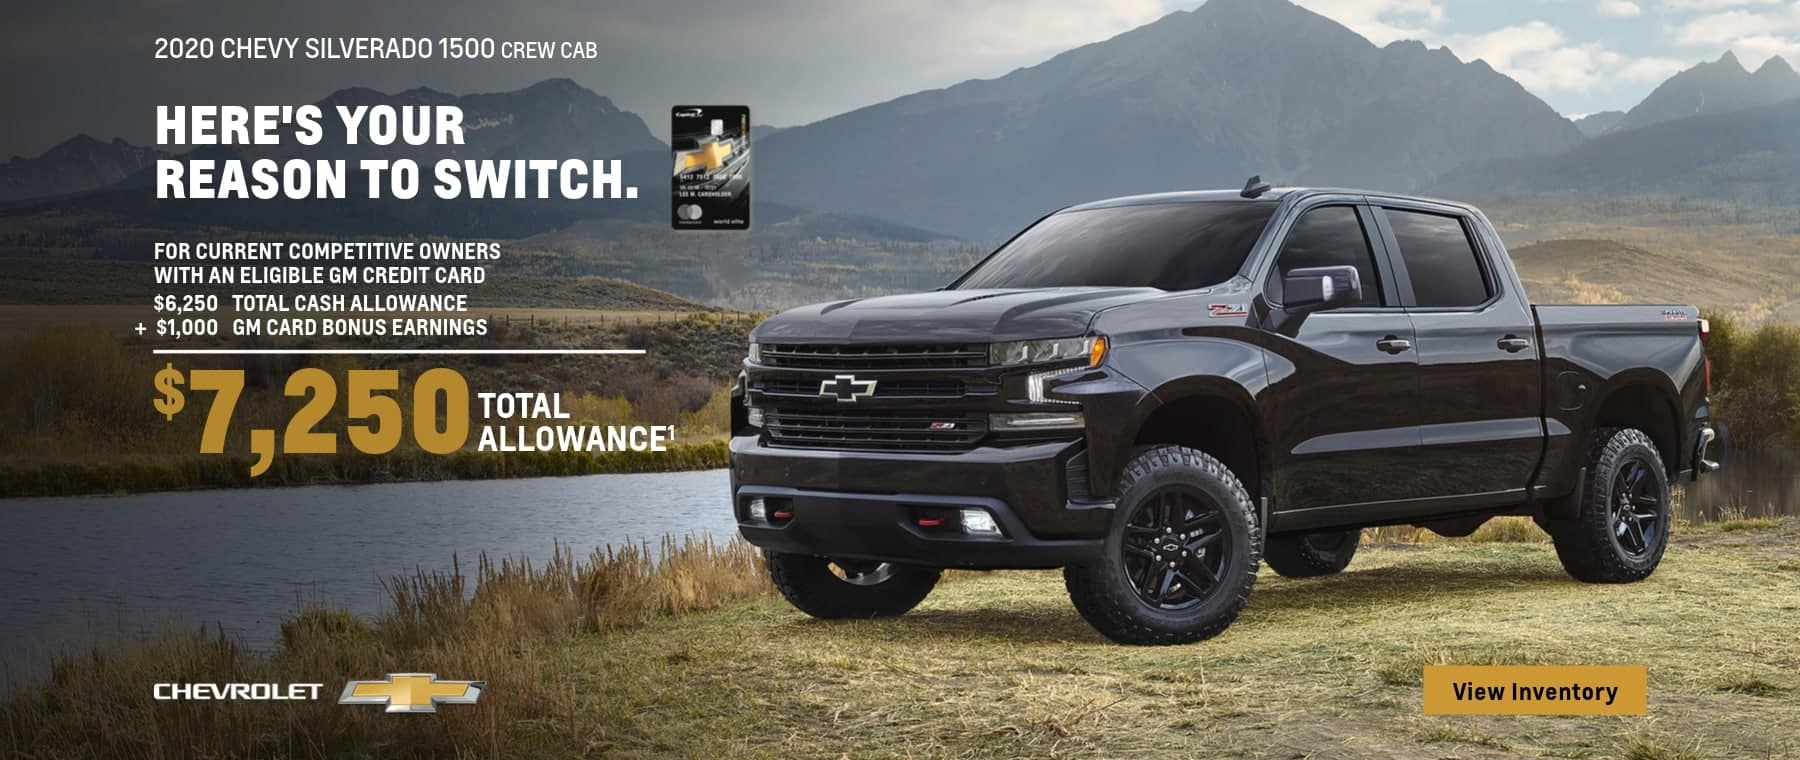 2020 Chevy Silverado 1500 Crew Cab For current competitive owners with an eligible GM credit card. $6,250 Total Cash allowance plus $1,000 GM Card bonus earnings. That's $7,250 total cash allowance.